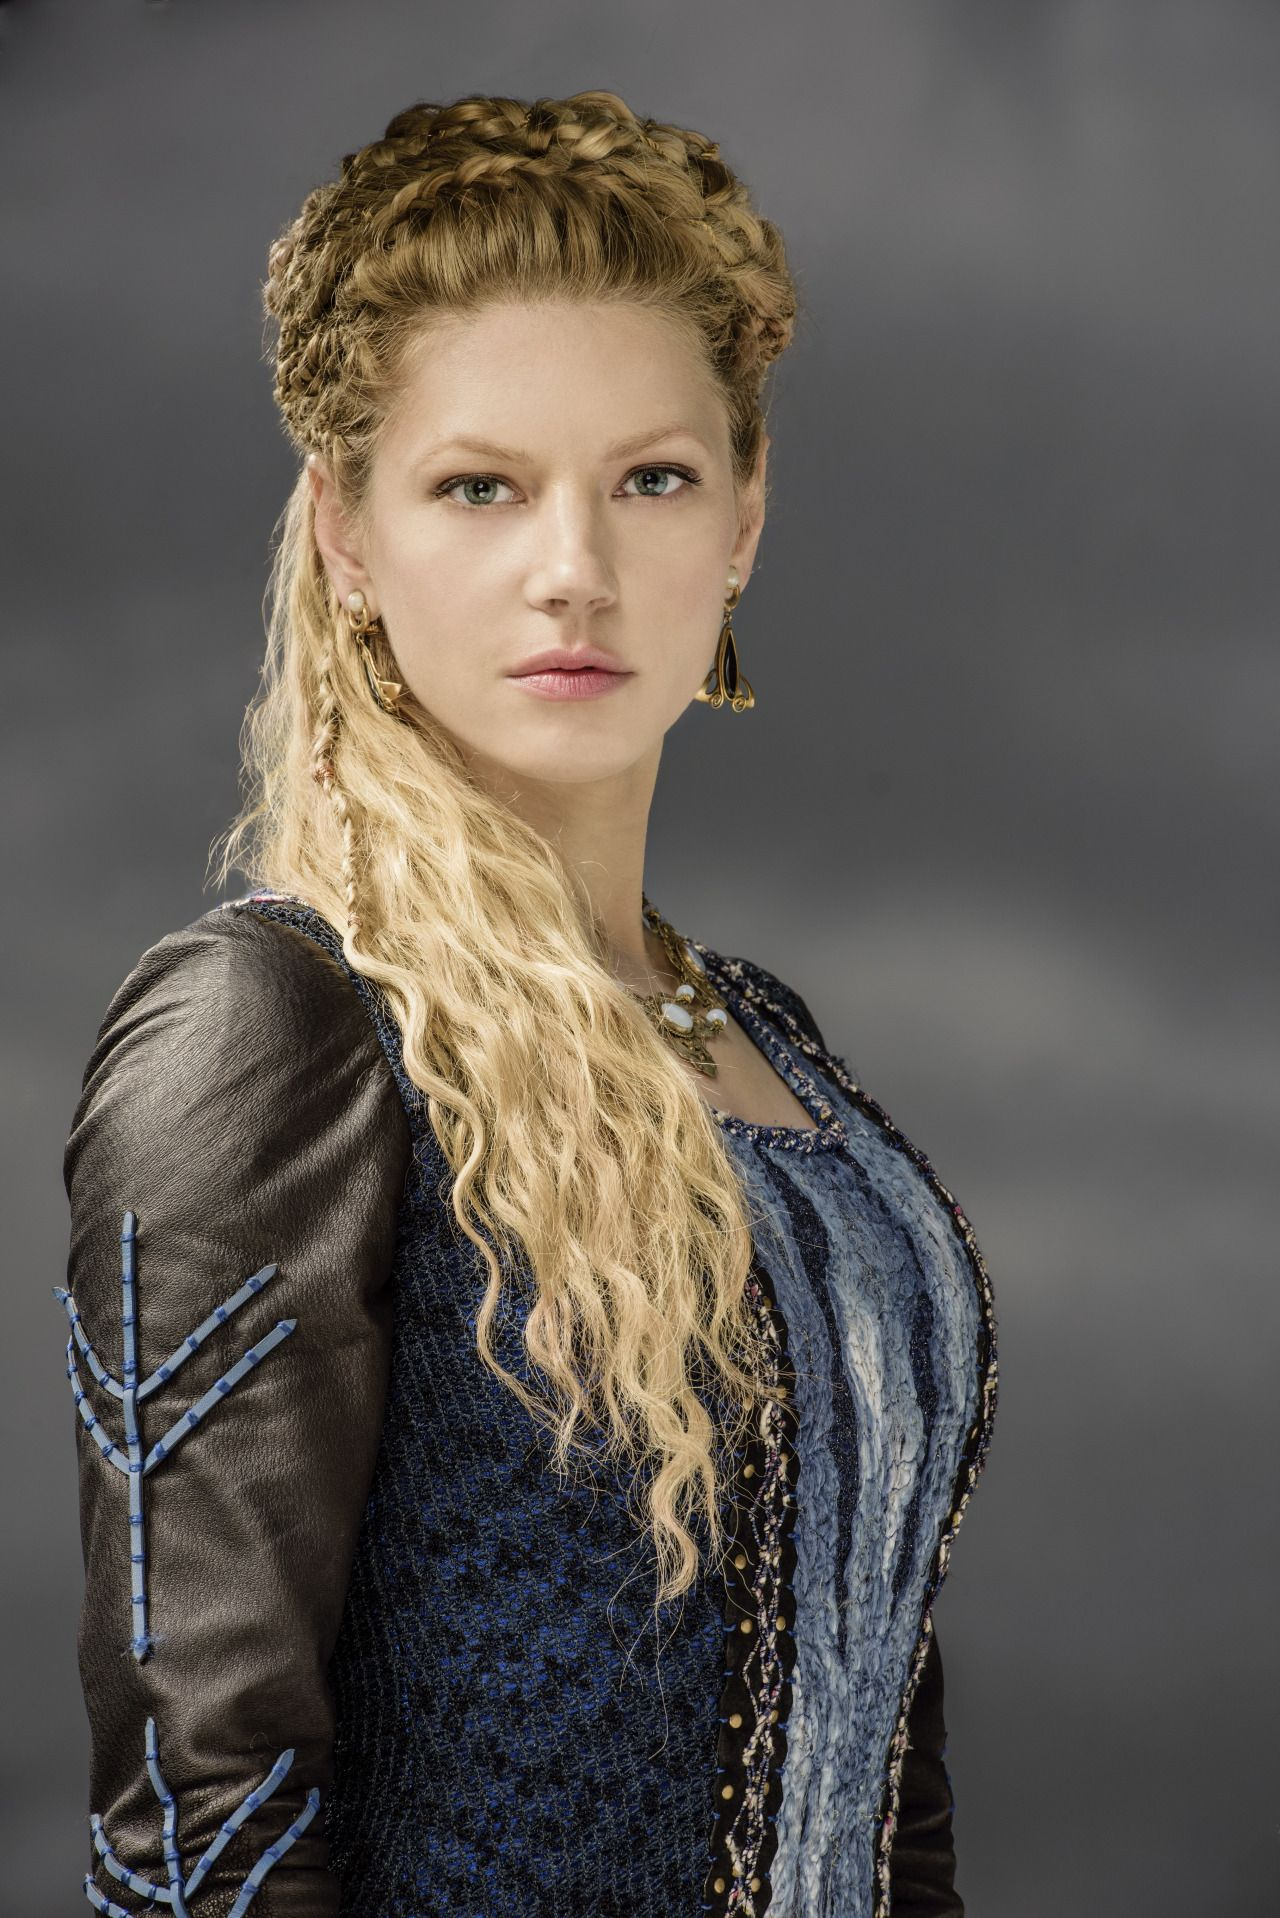 Katheryn Winnick lagertha vikings hairstyles | recipes ...